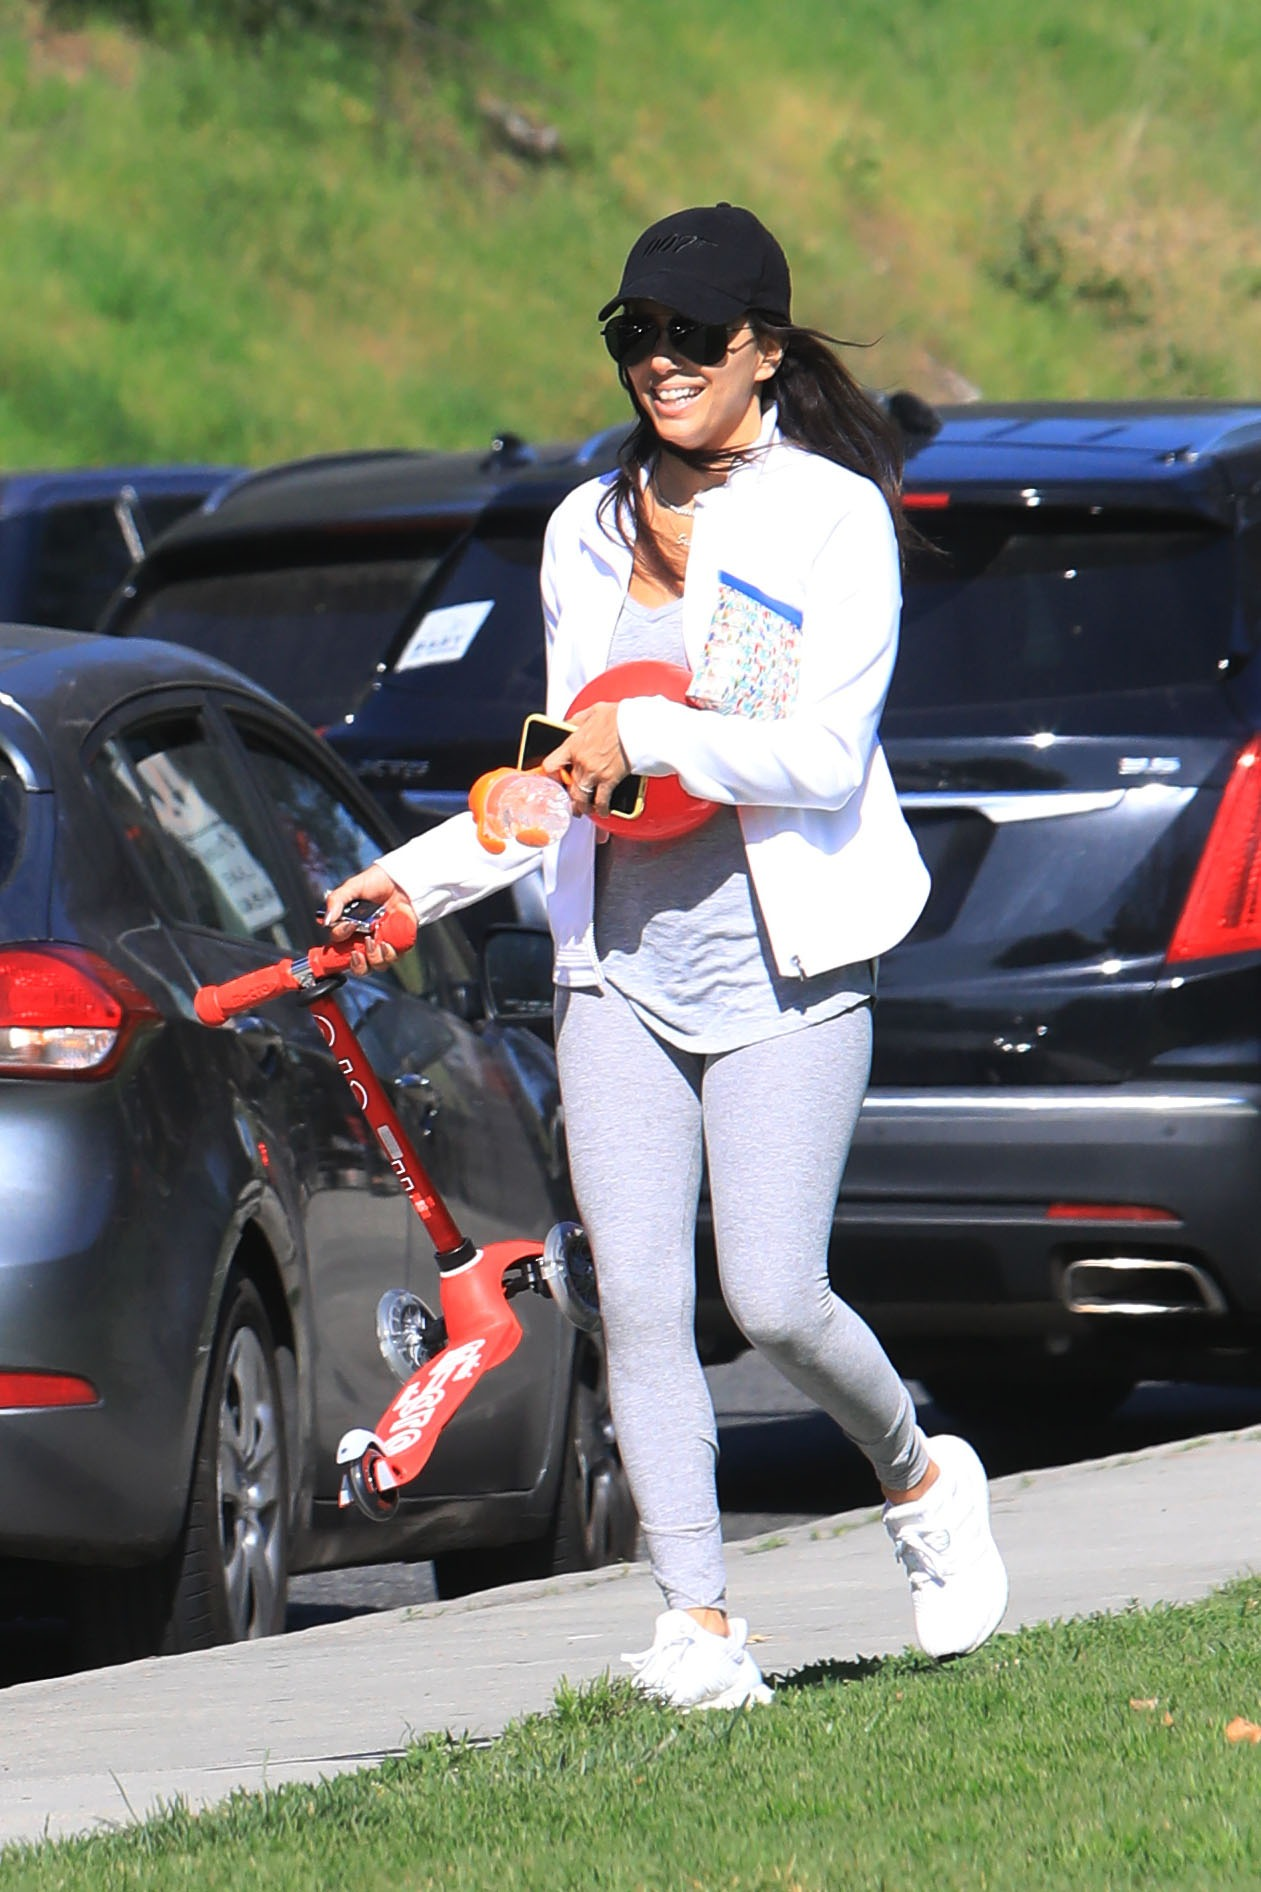 EXCLUSIVE: Eva Longoria and her husband Jose Baston takes their kid Santiago to the park in Beverly Hills **SPECIAL INSTRUCTIONS*** Please pixelate children's faces before publication.***. 03 Feb 2020, Image: 496286038, License: Rights-managed, Restrictions: World Rights, Model Release: no, Credit line: MEGA / The Mega Agency / Profimedia